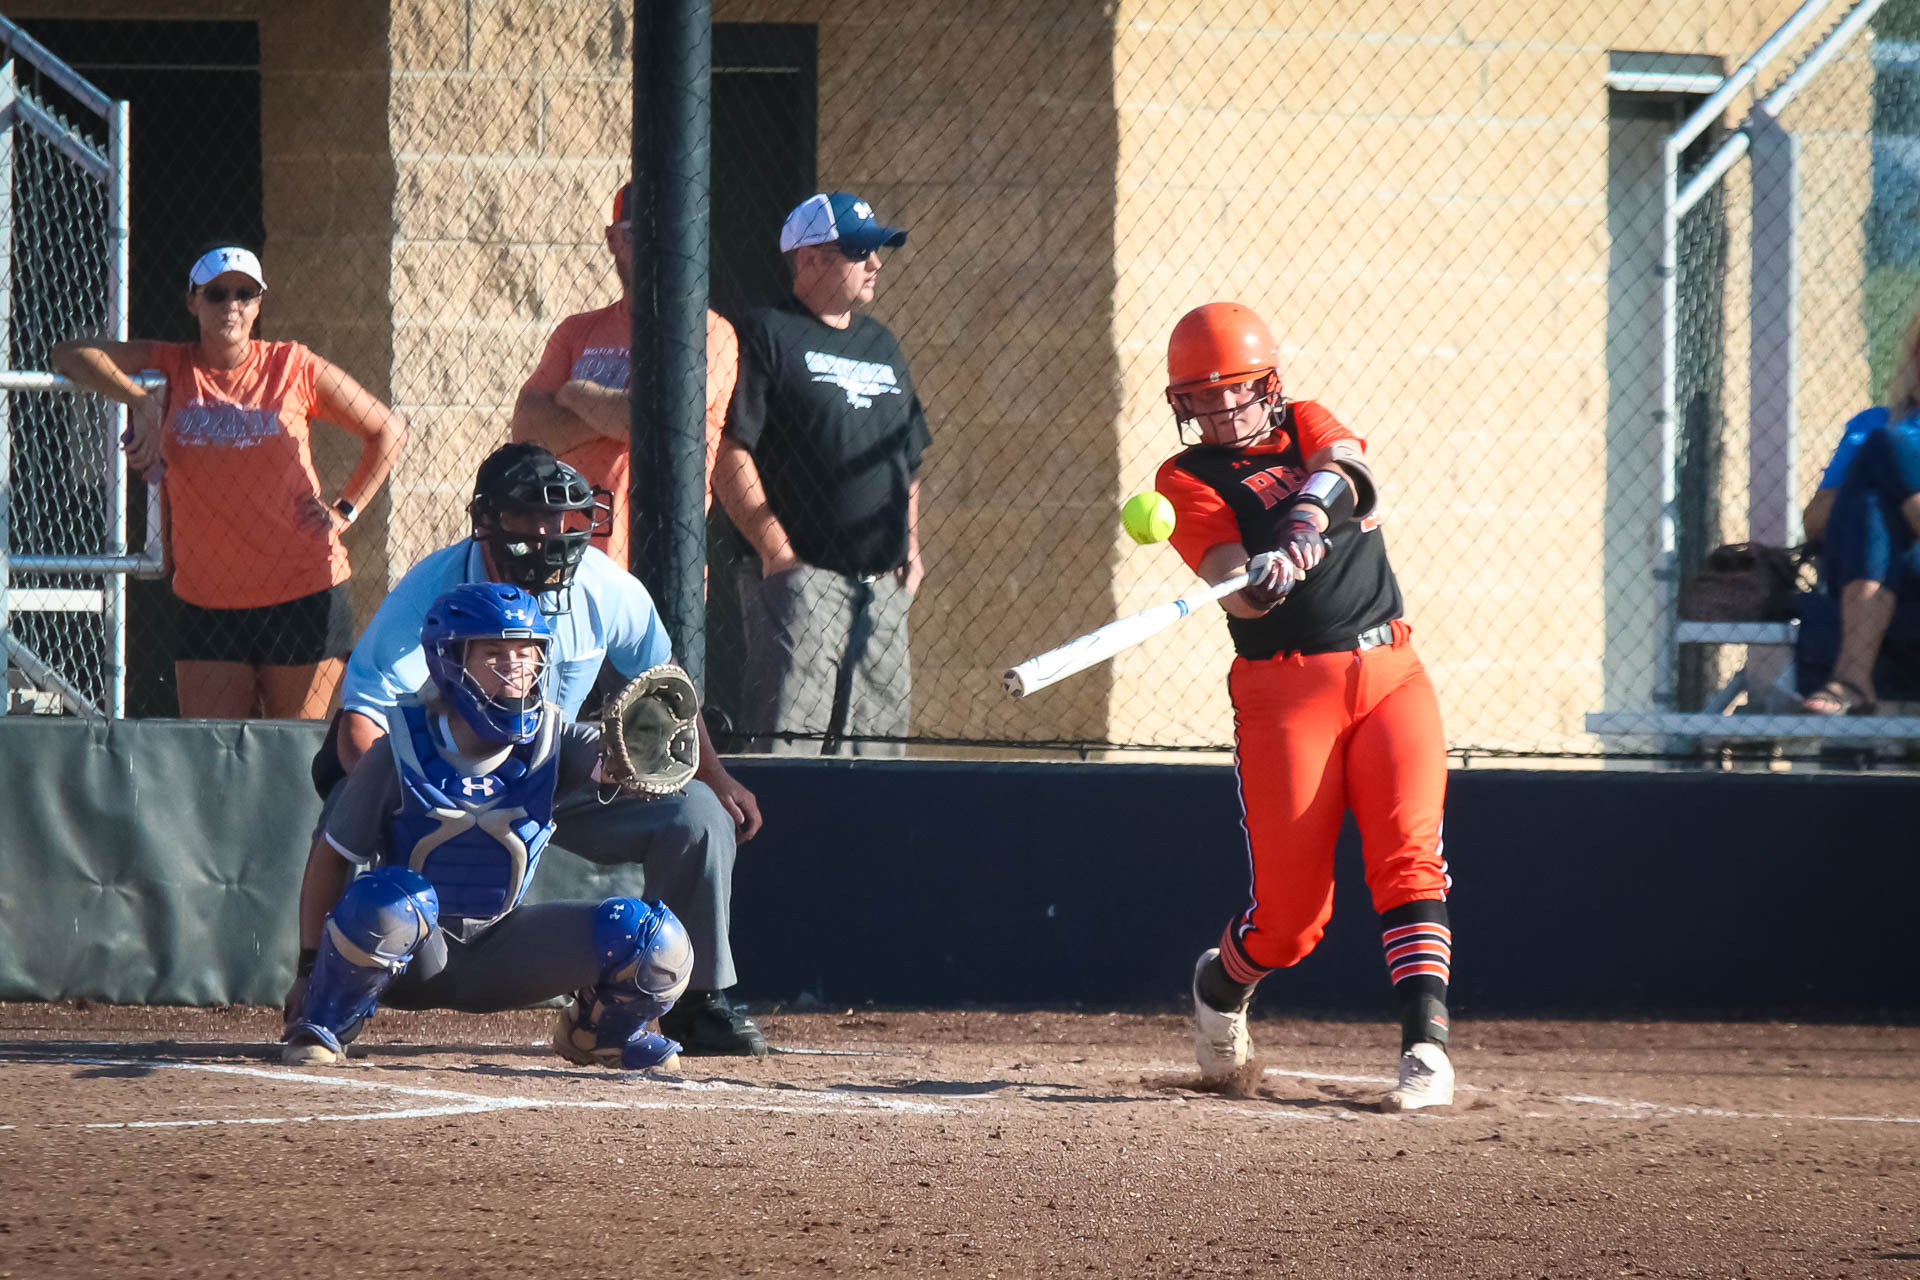 Easy As 1-2-3: Lady Tigers Wallop Three Homers In One Inning To Blast Past Carthage